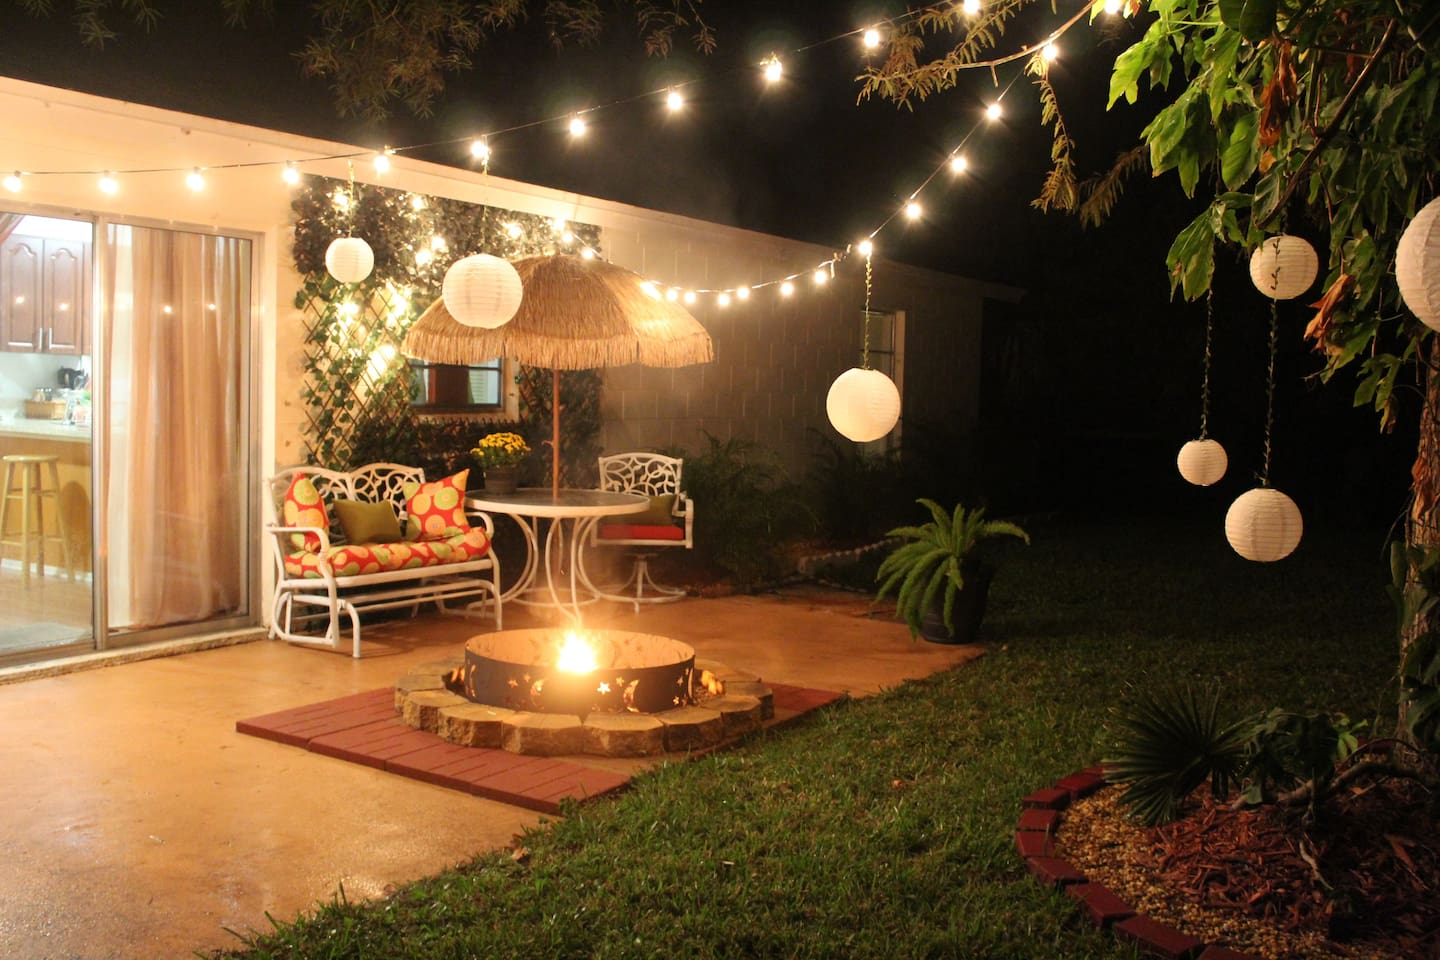 At the end of a day, find peace and serenity around the cozy fire pit